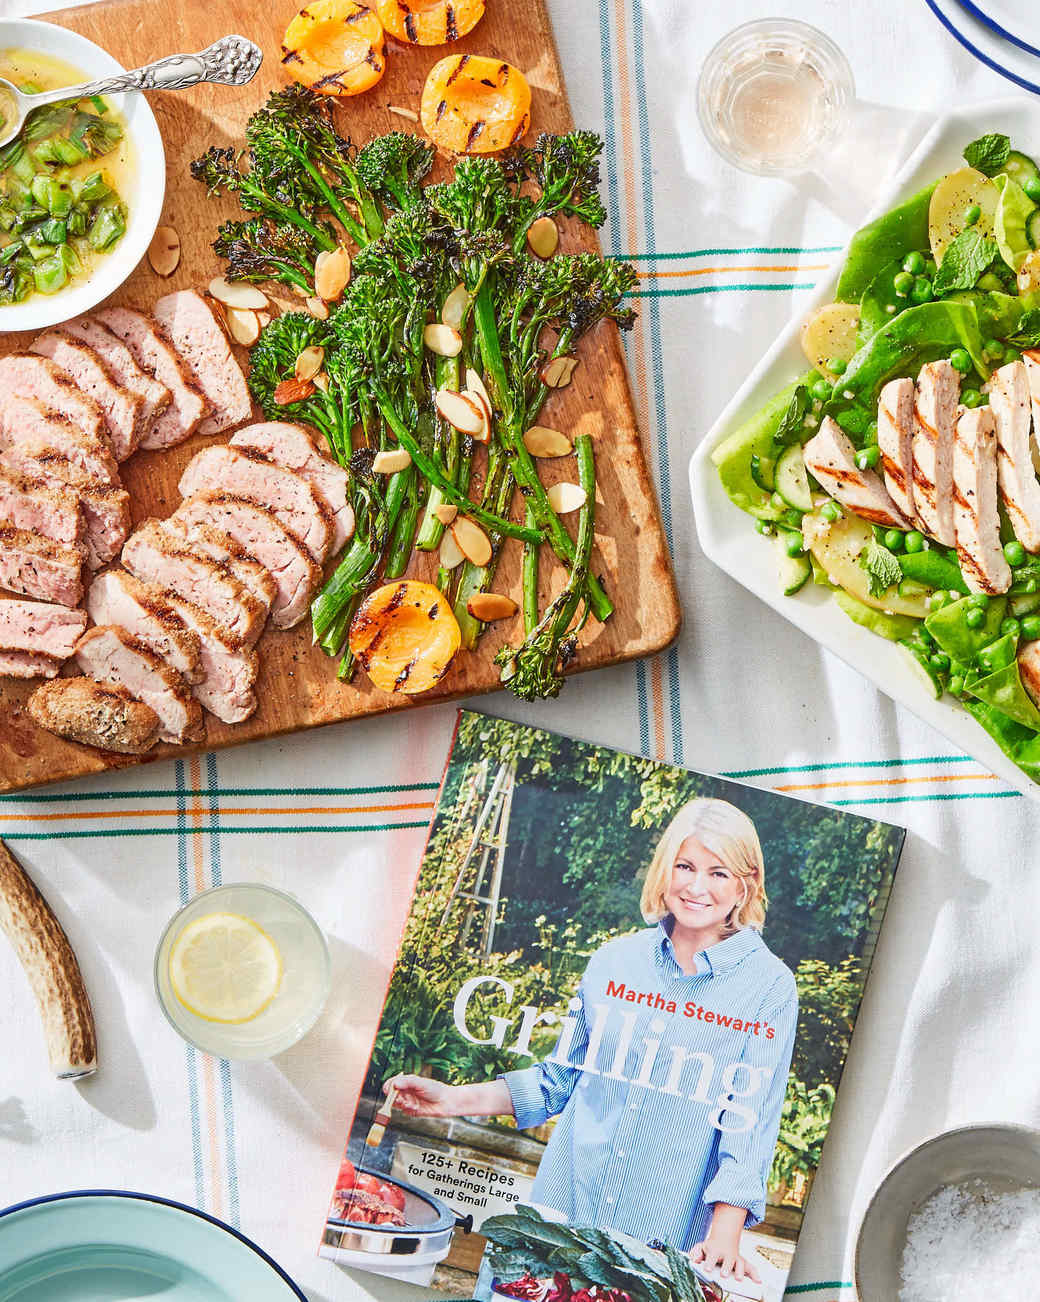 martha grilling book on table with grilled food